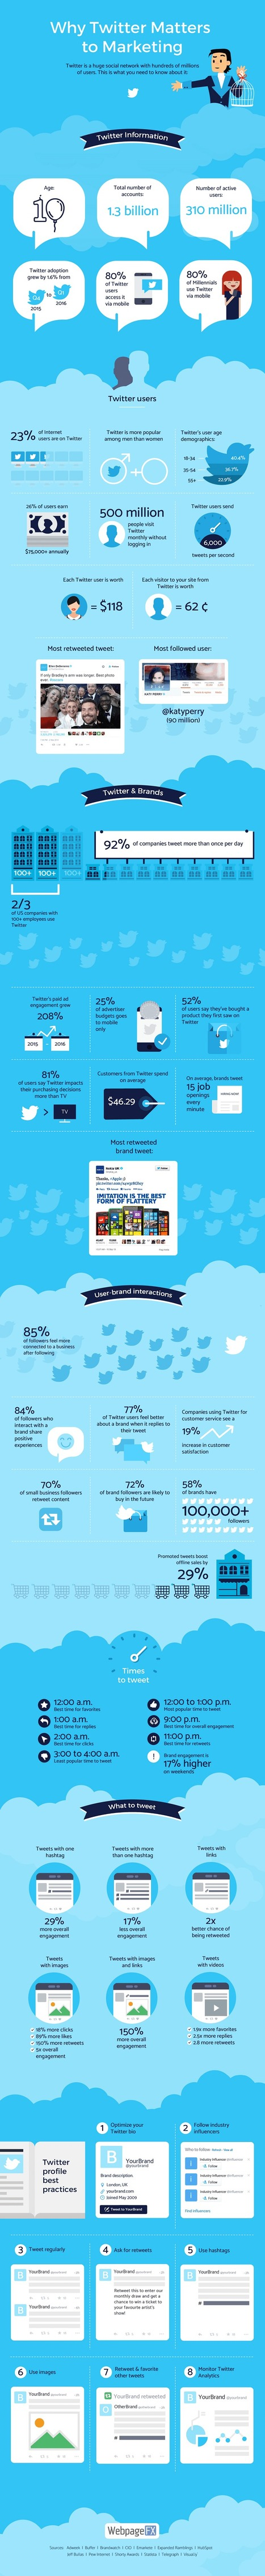 Why Twitter Matters to Marketing #Infographic | The Twinkie Awards | Scoop.it